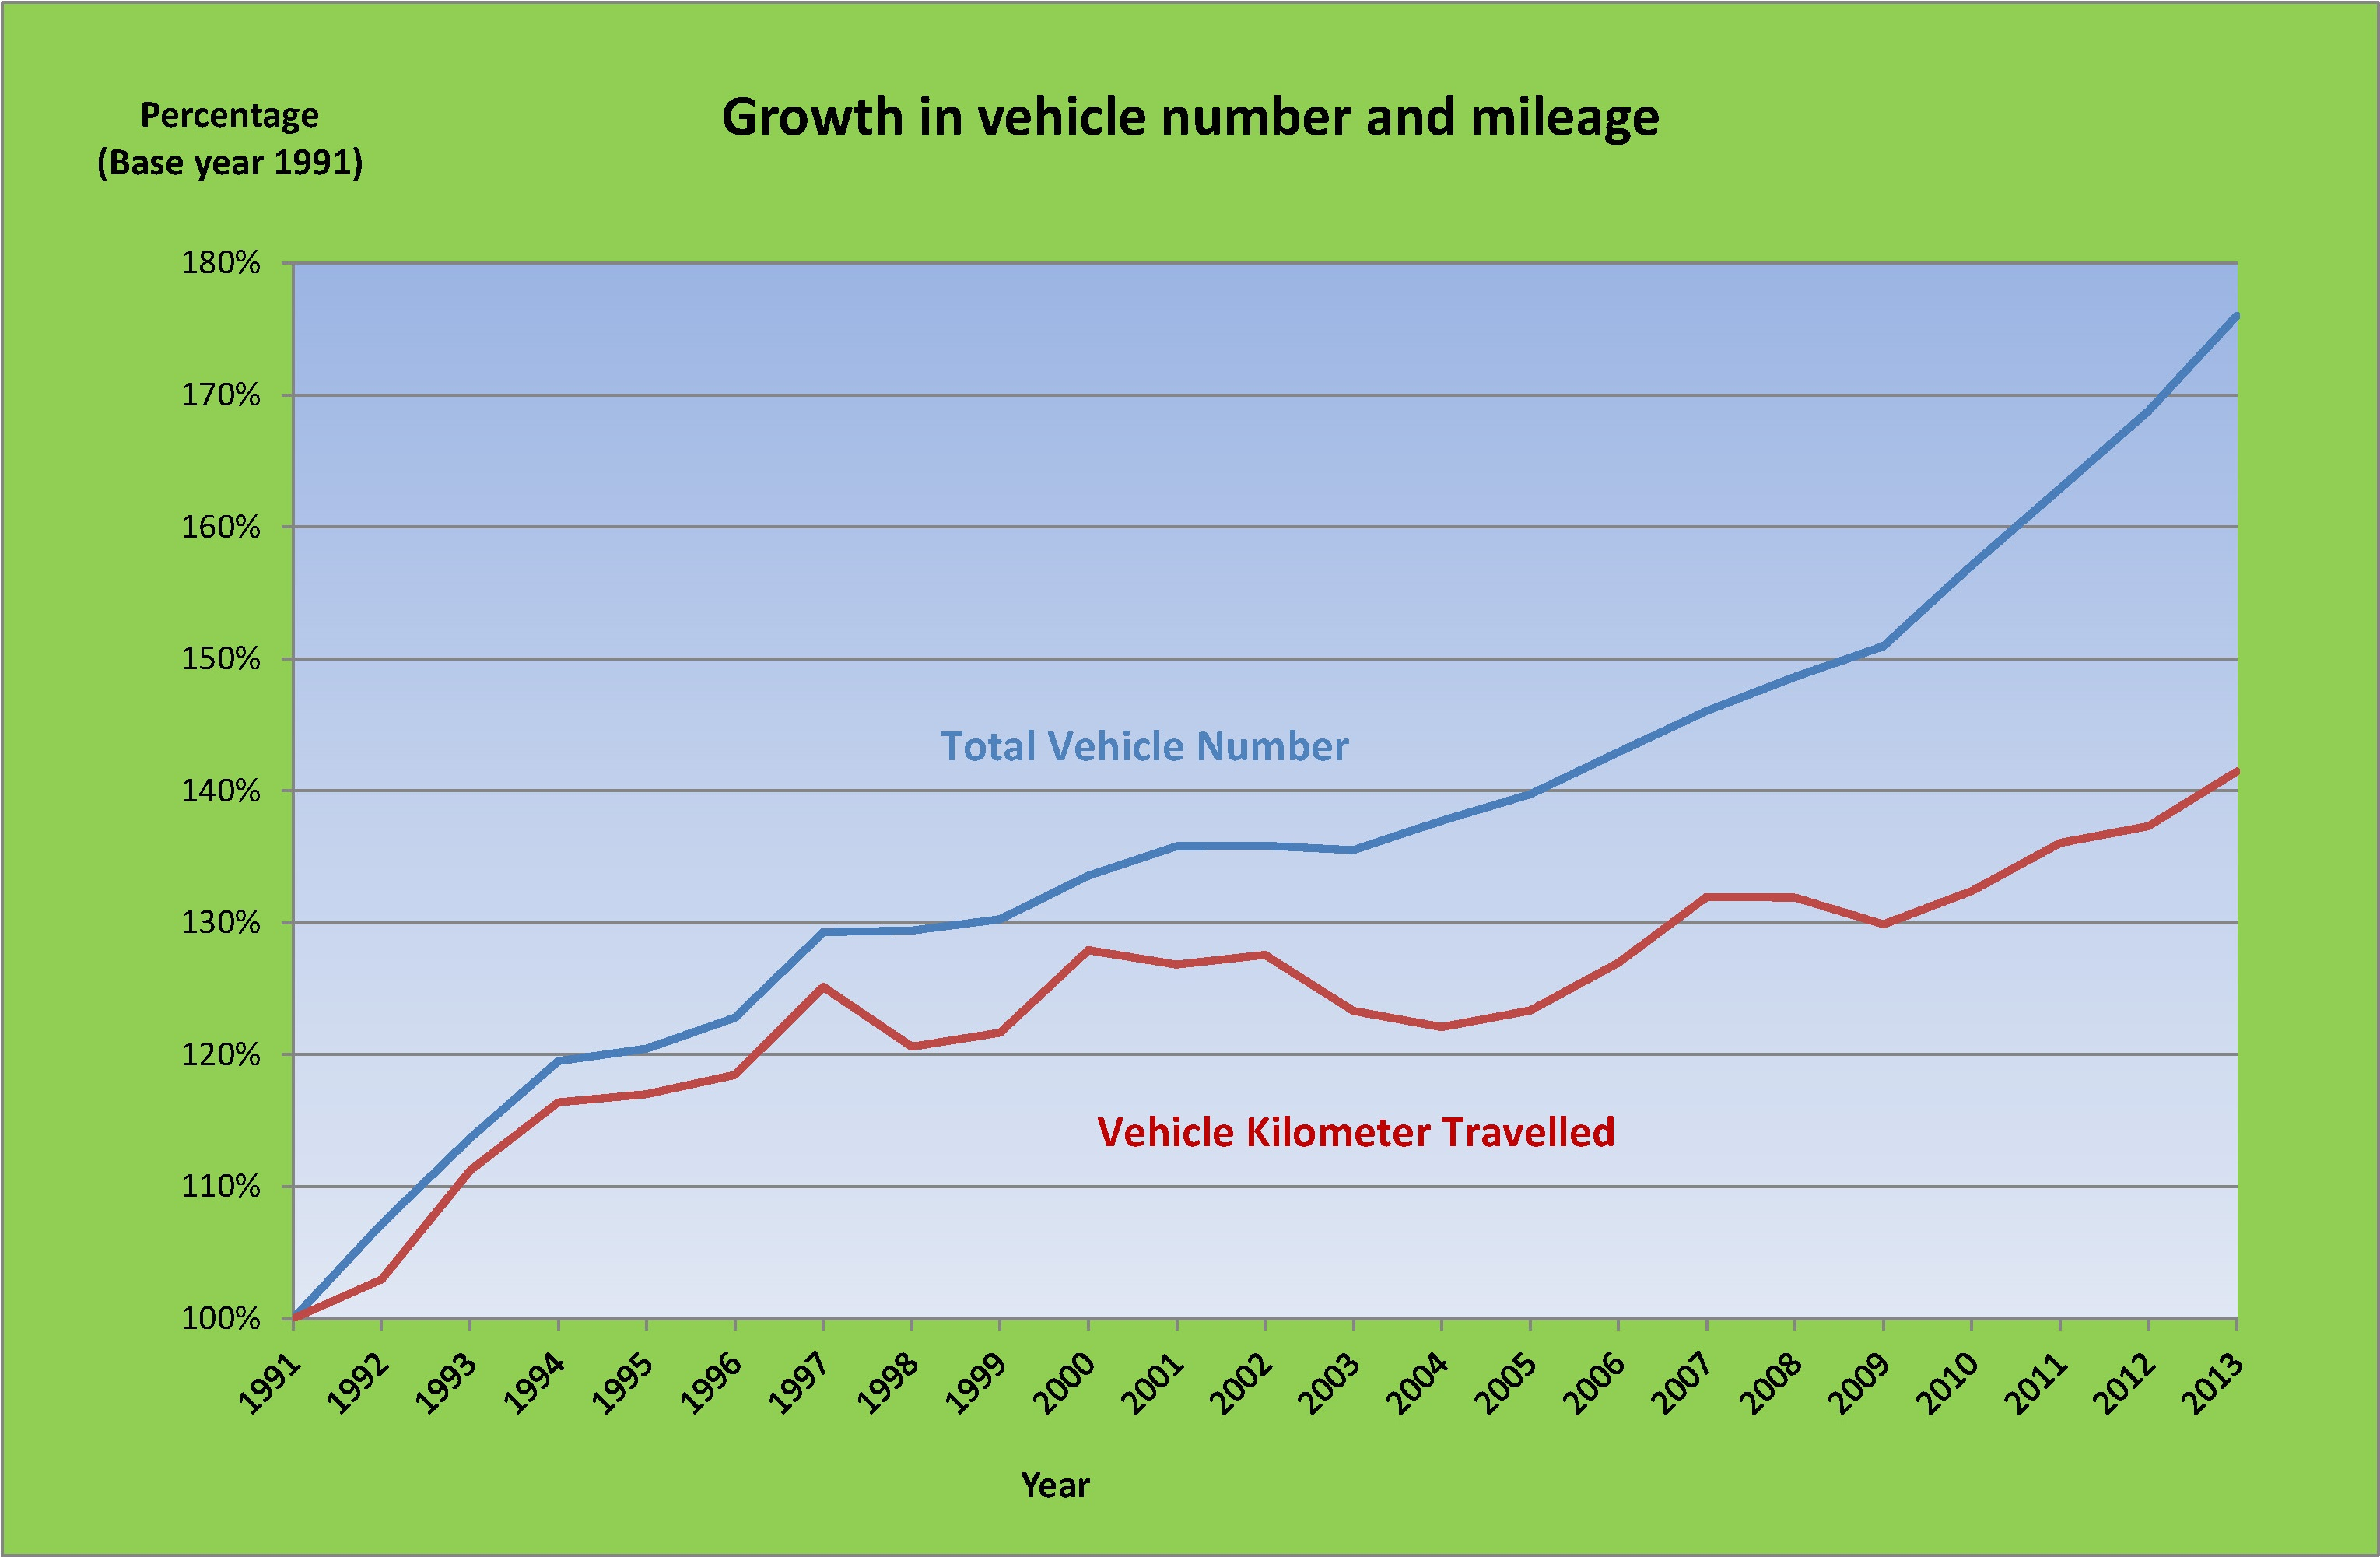 Chart of growth in vehicle number and mileage